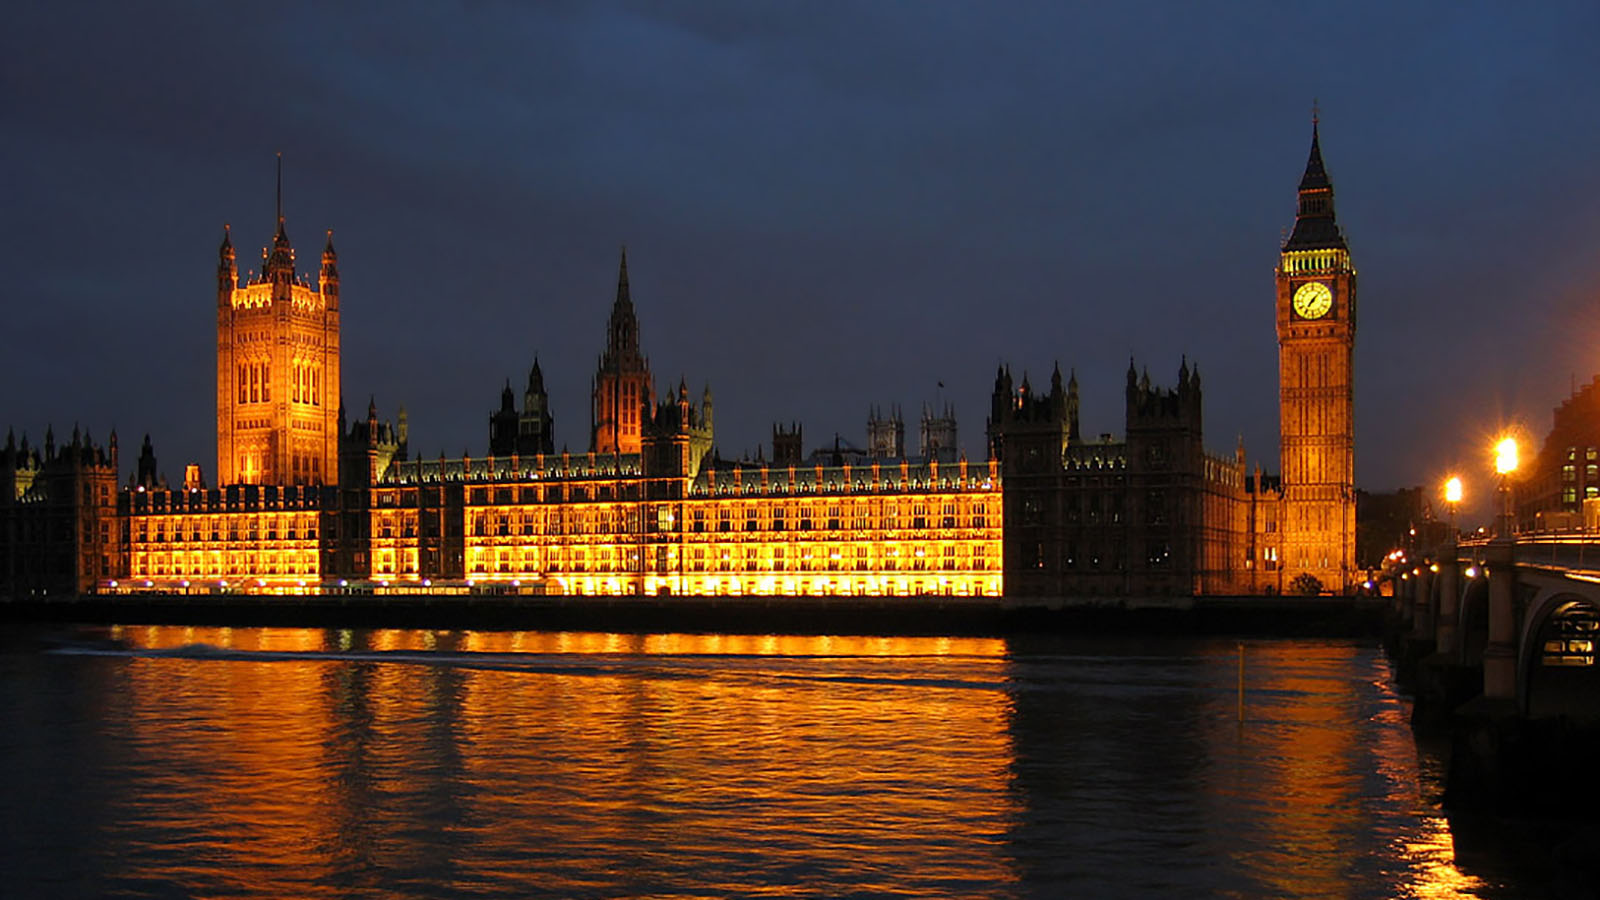 The Palace of Westminster at night seen from the south bank of the River Thames.